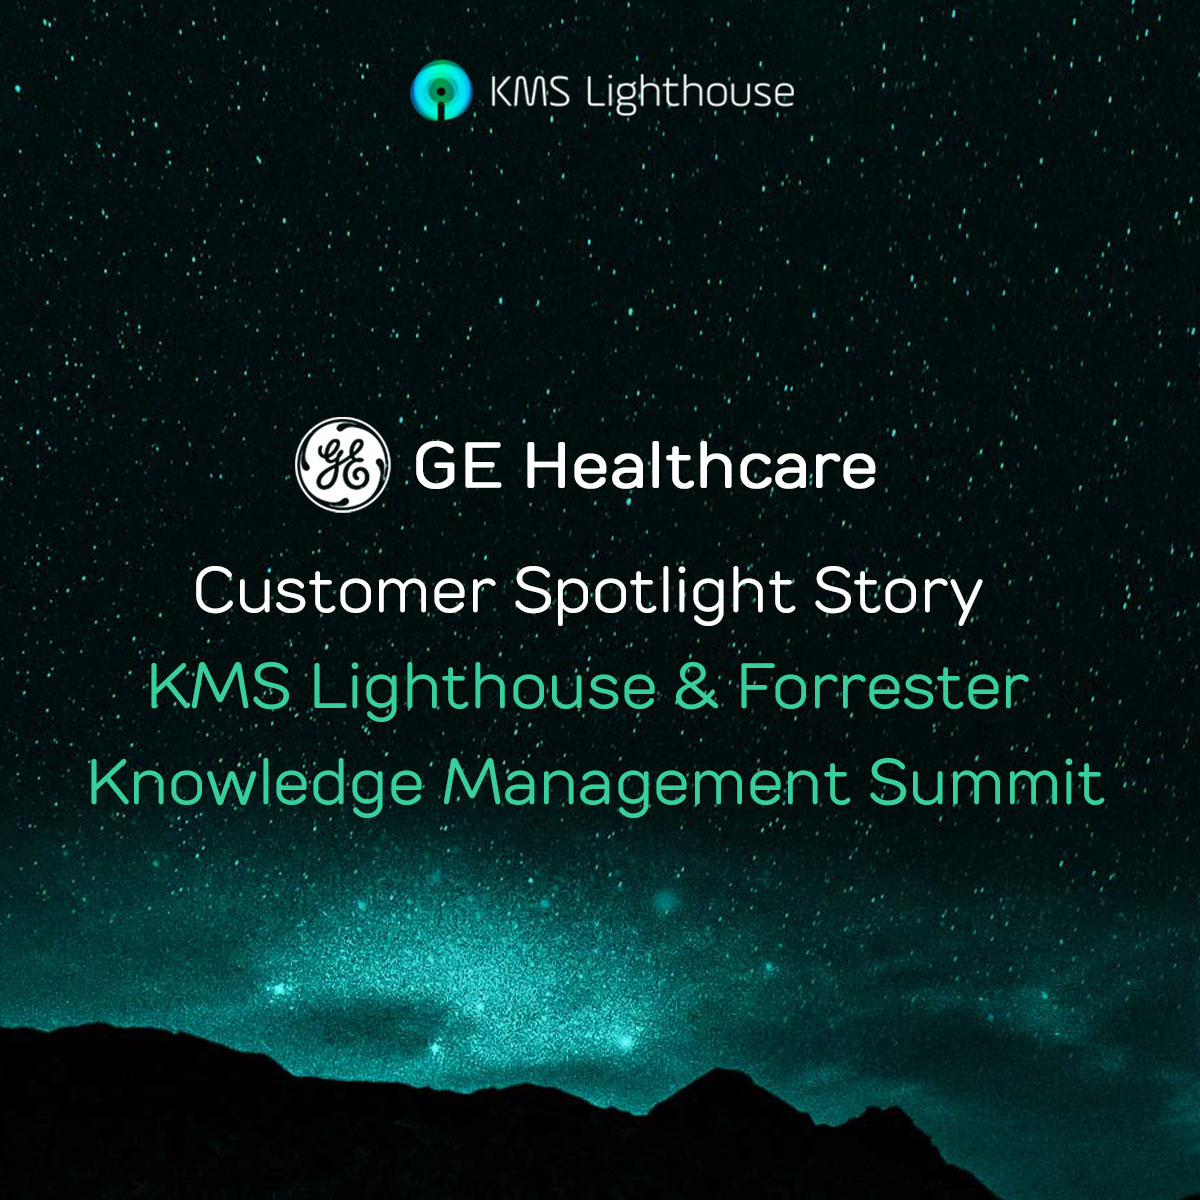 Watch the webinar:<br>GE Healthcare Customer Spotlight Story KMS Lighthouse & Forrester Knowledge Management Summit